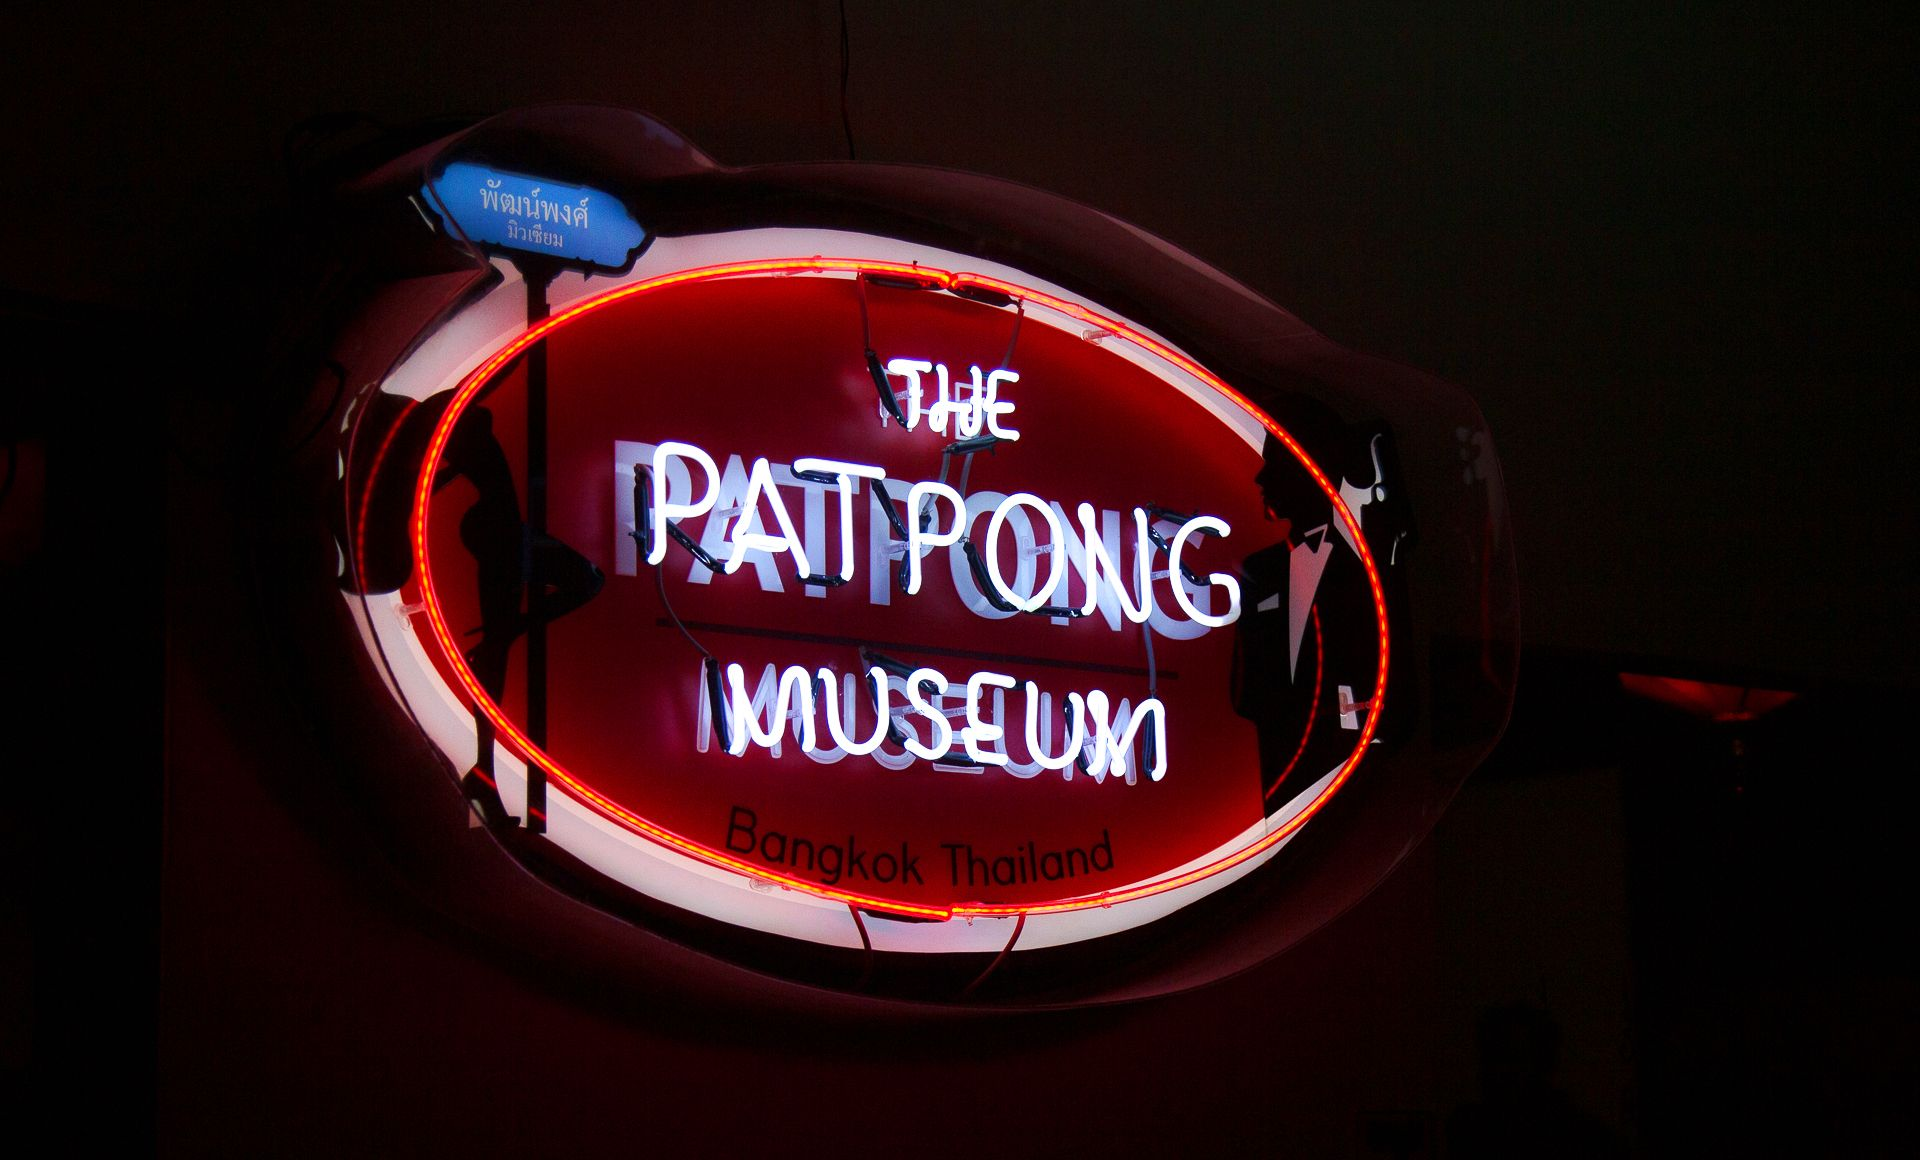 The Patpong Museum Is An Ode To Bangkok's Best-Kept Secret